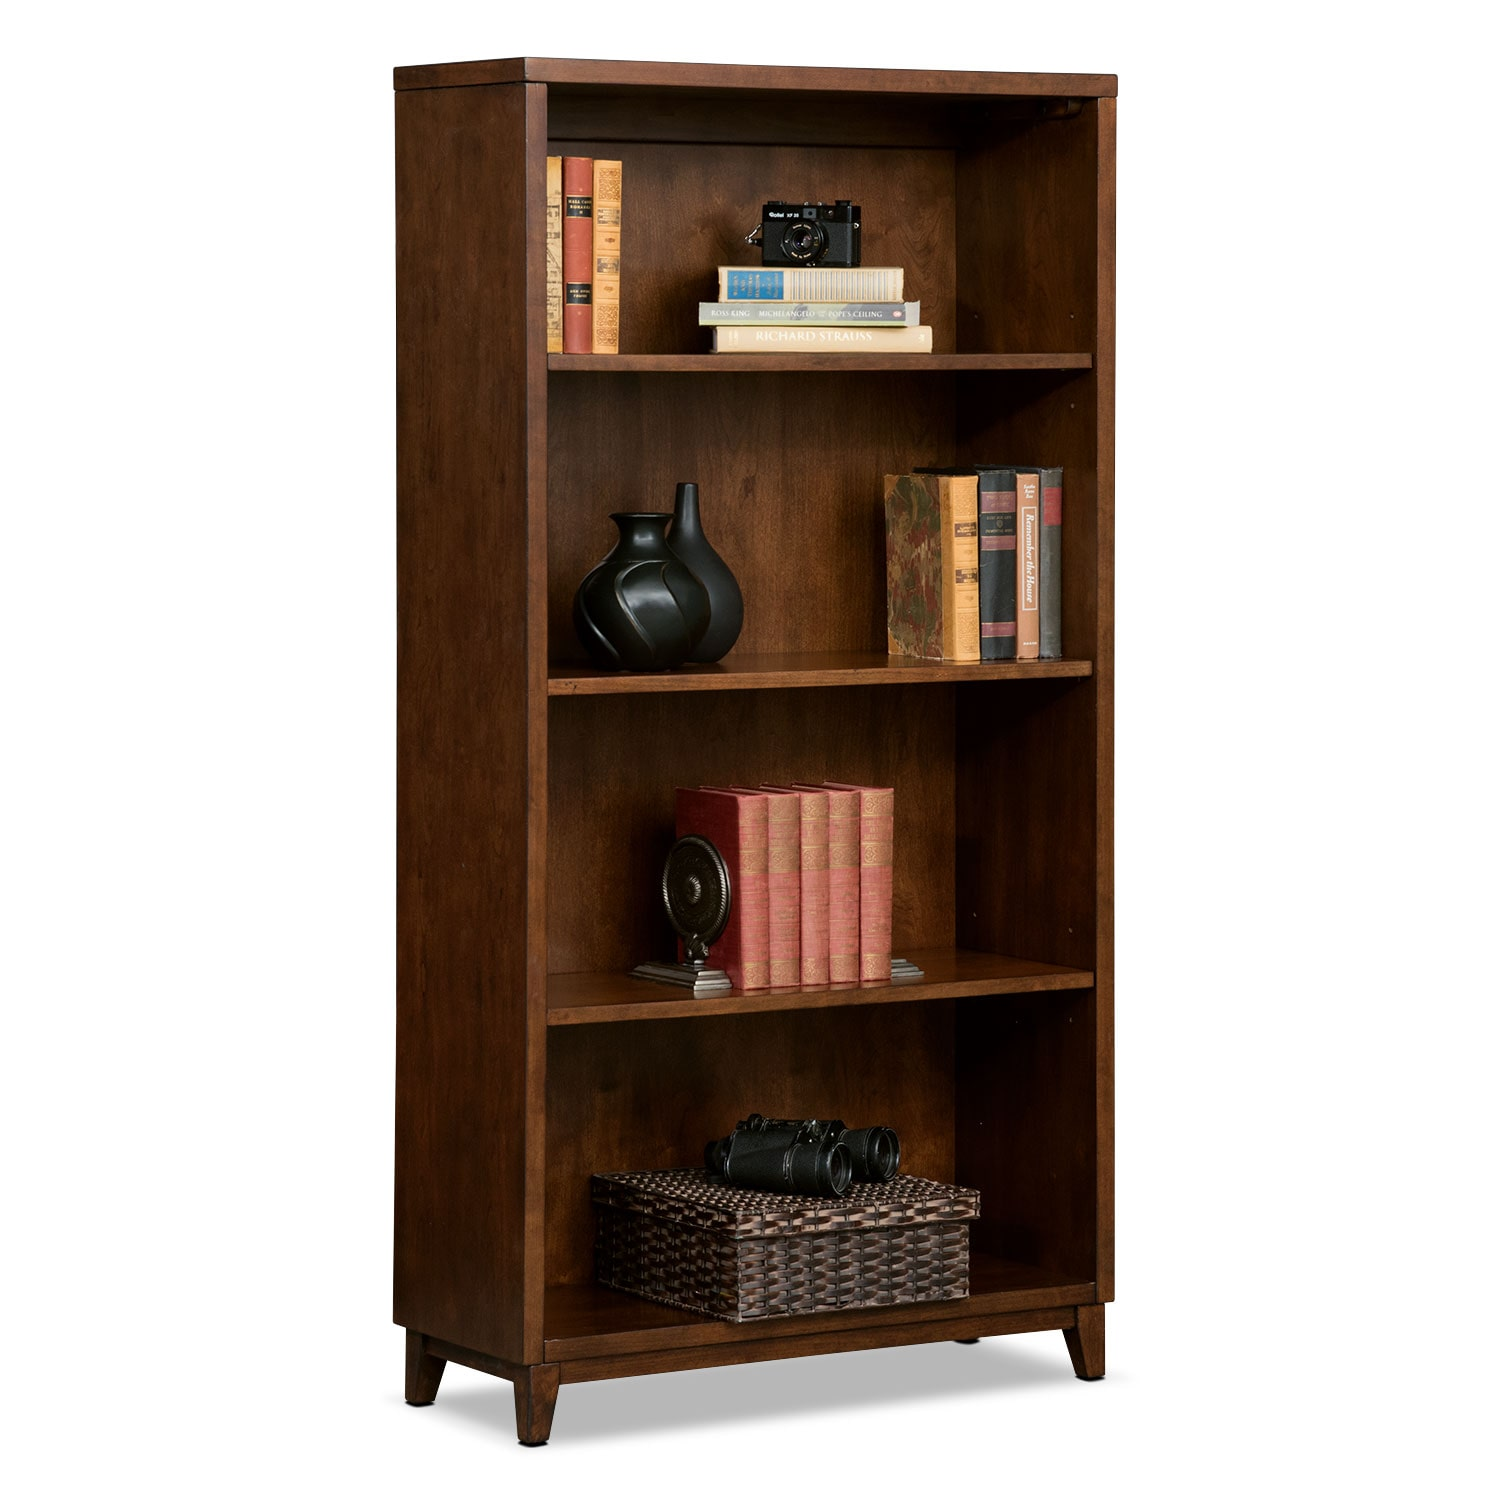 "Oslo 58"" Bookcase - Cherry"